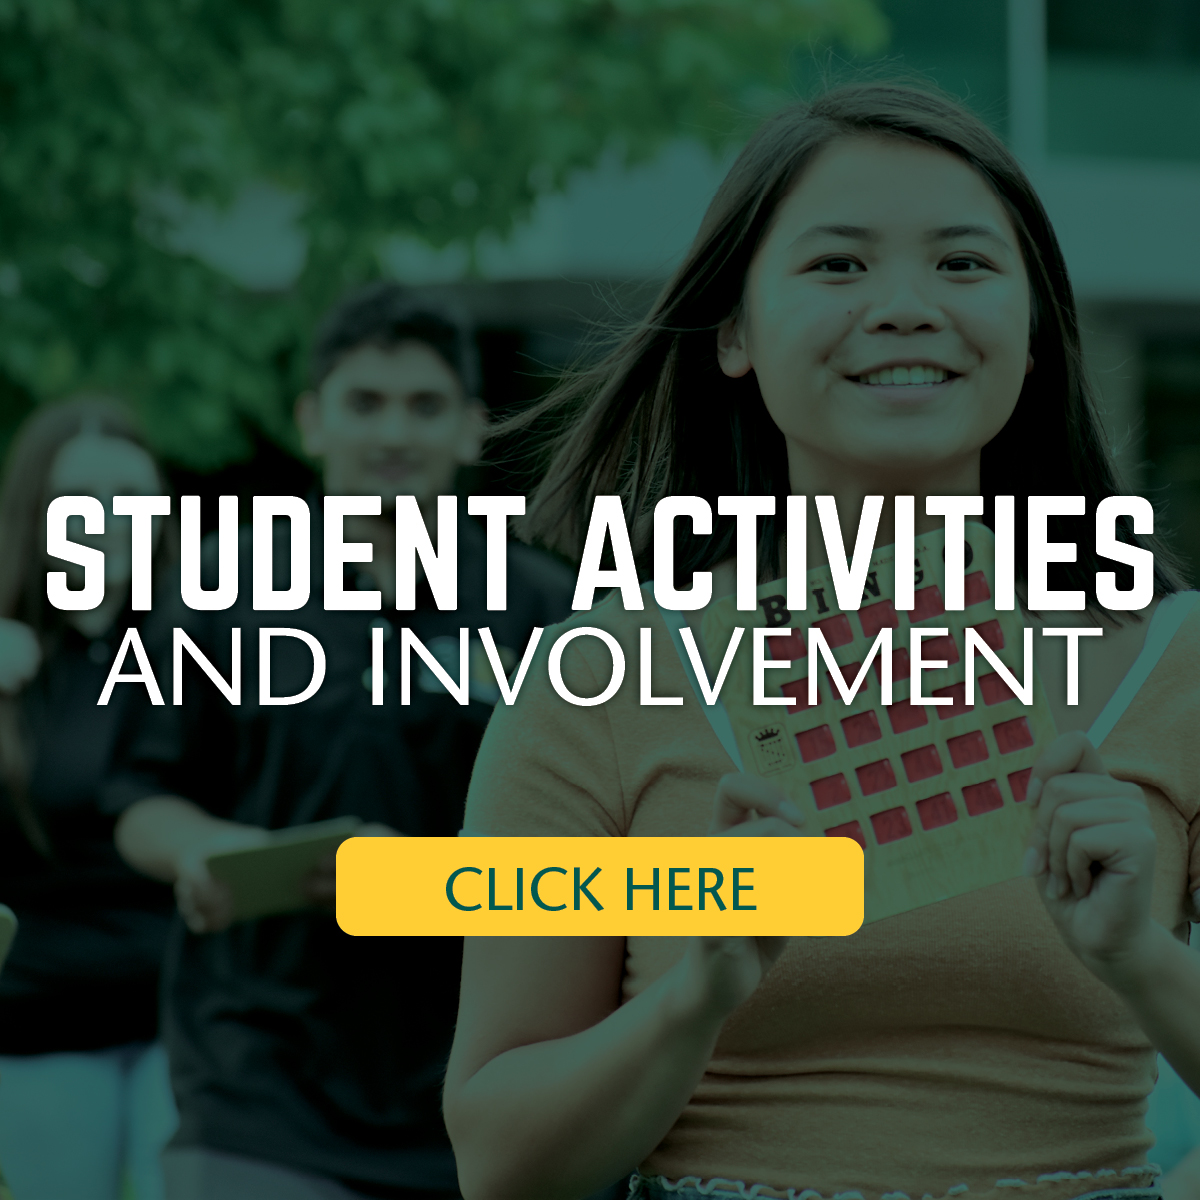 Student activities and involvement